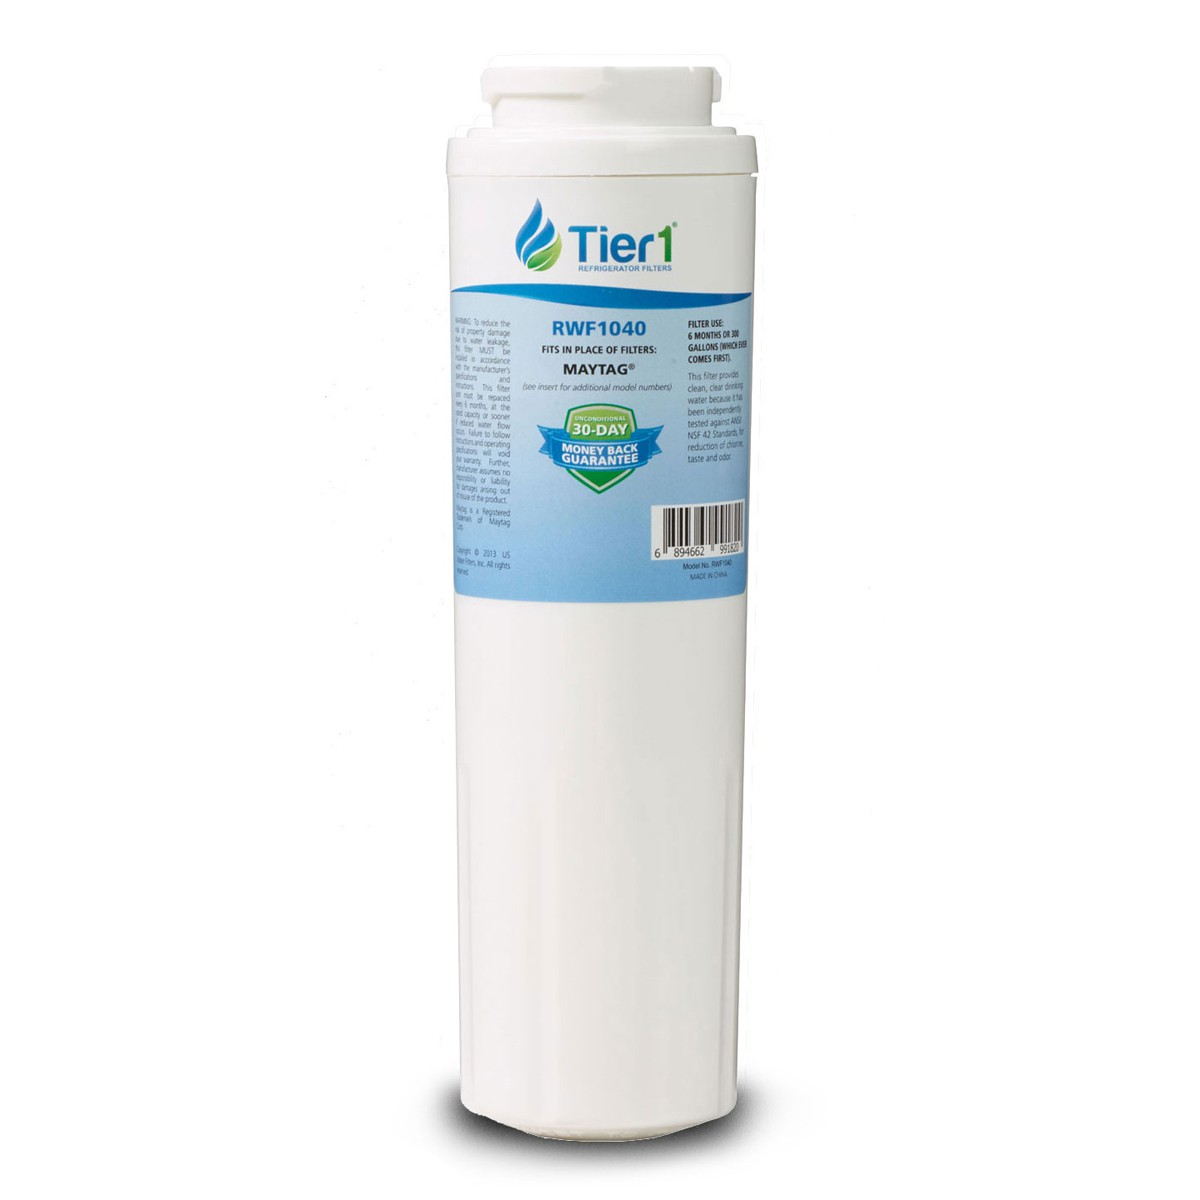 Replacement Refrigerator Water Filters | Waterfilters net